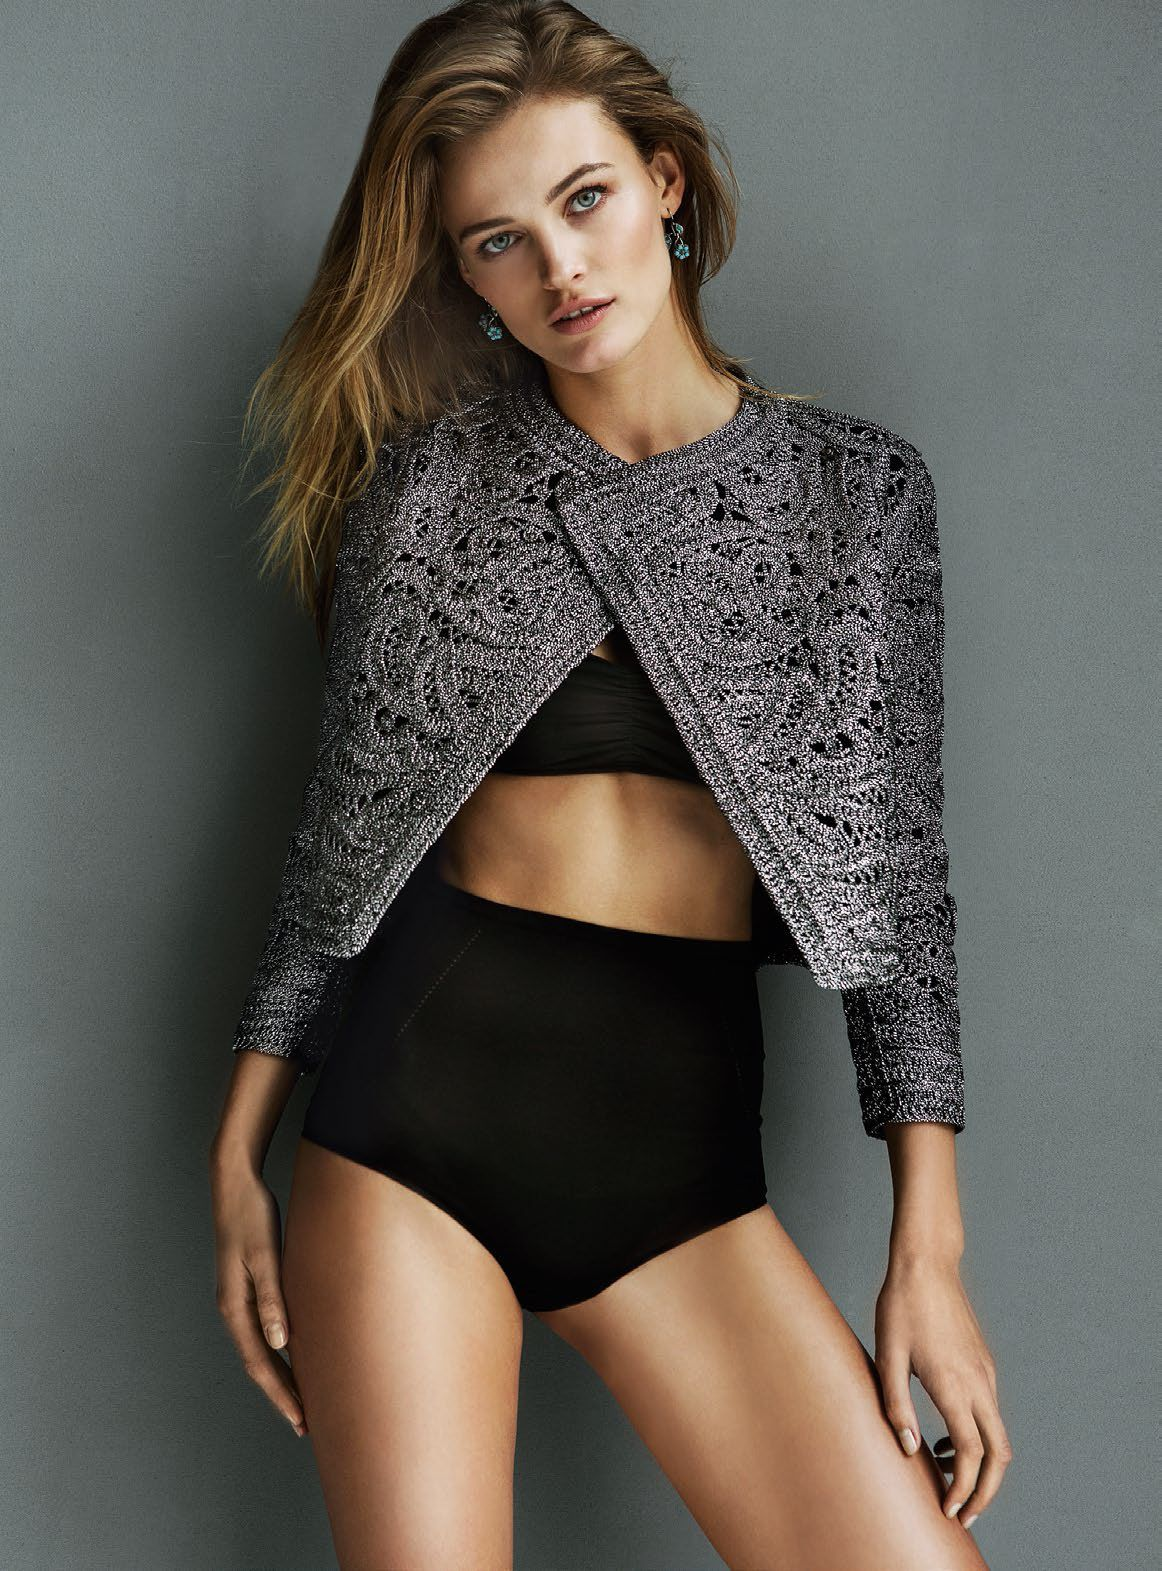 sexy this, love that  sweater  ::  Edita Vilkeviciute by Bela Adler  and Salvador Fresneda for Glamour Spain, May 2015